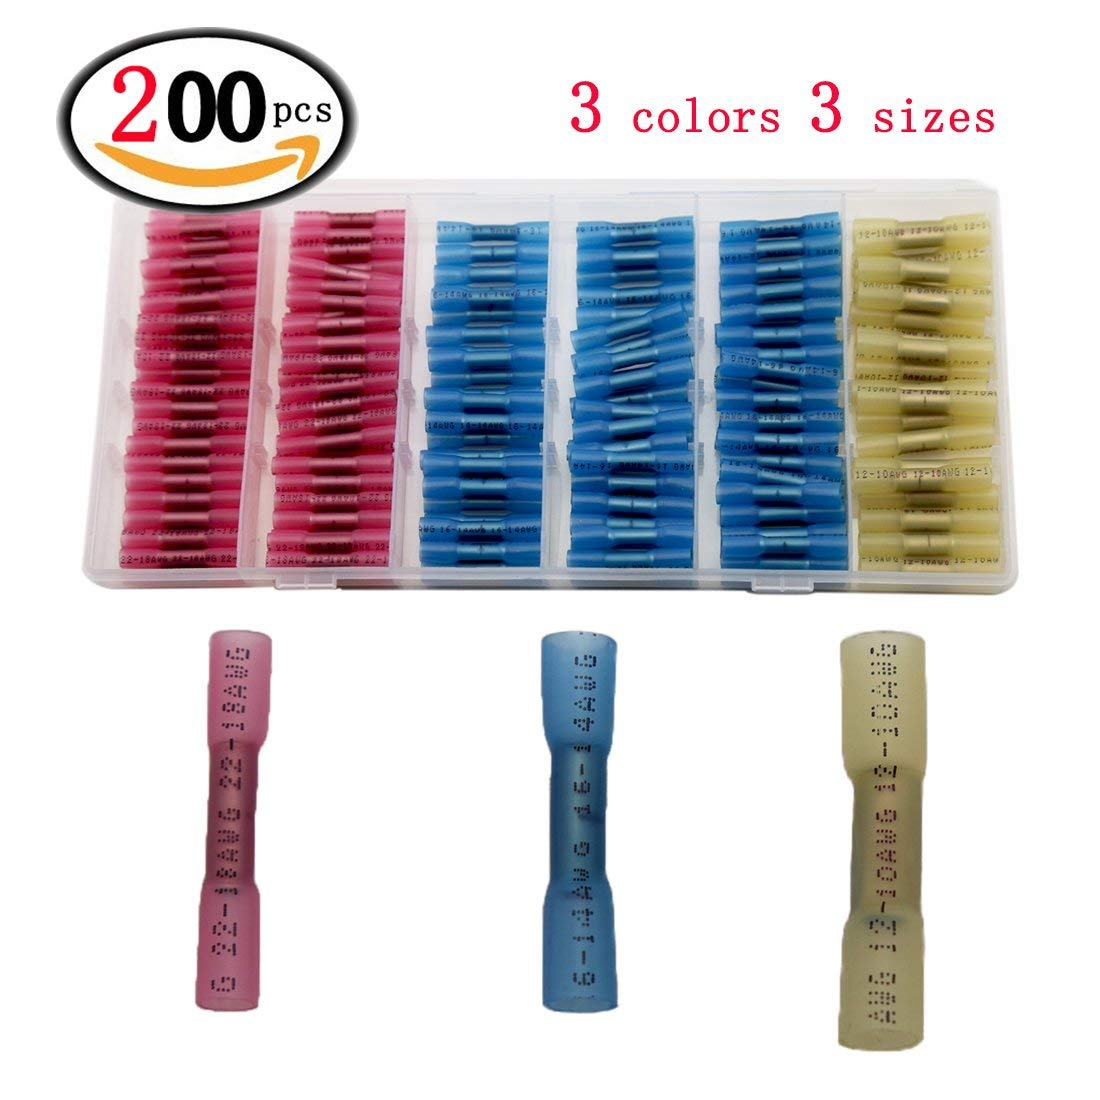 200pcs Heat Shrink Butt Connectors Terminals, Factory Sale Insulated Waterproof Marine Automotive Copper Wire Electrical Kits (3 colors 3 sizes)